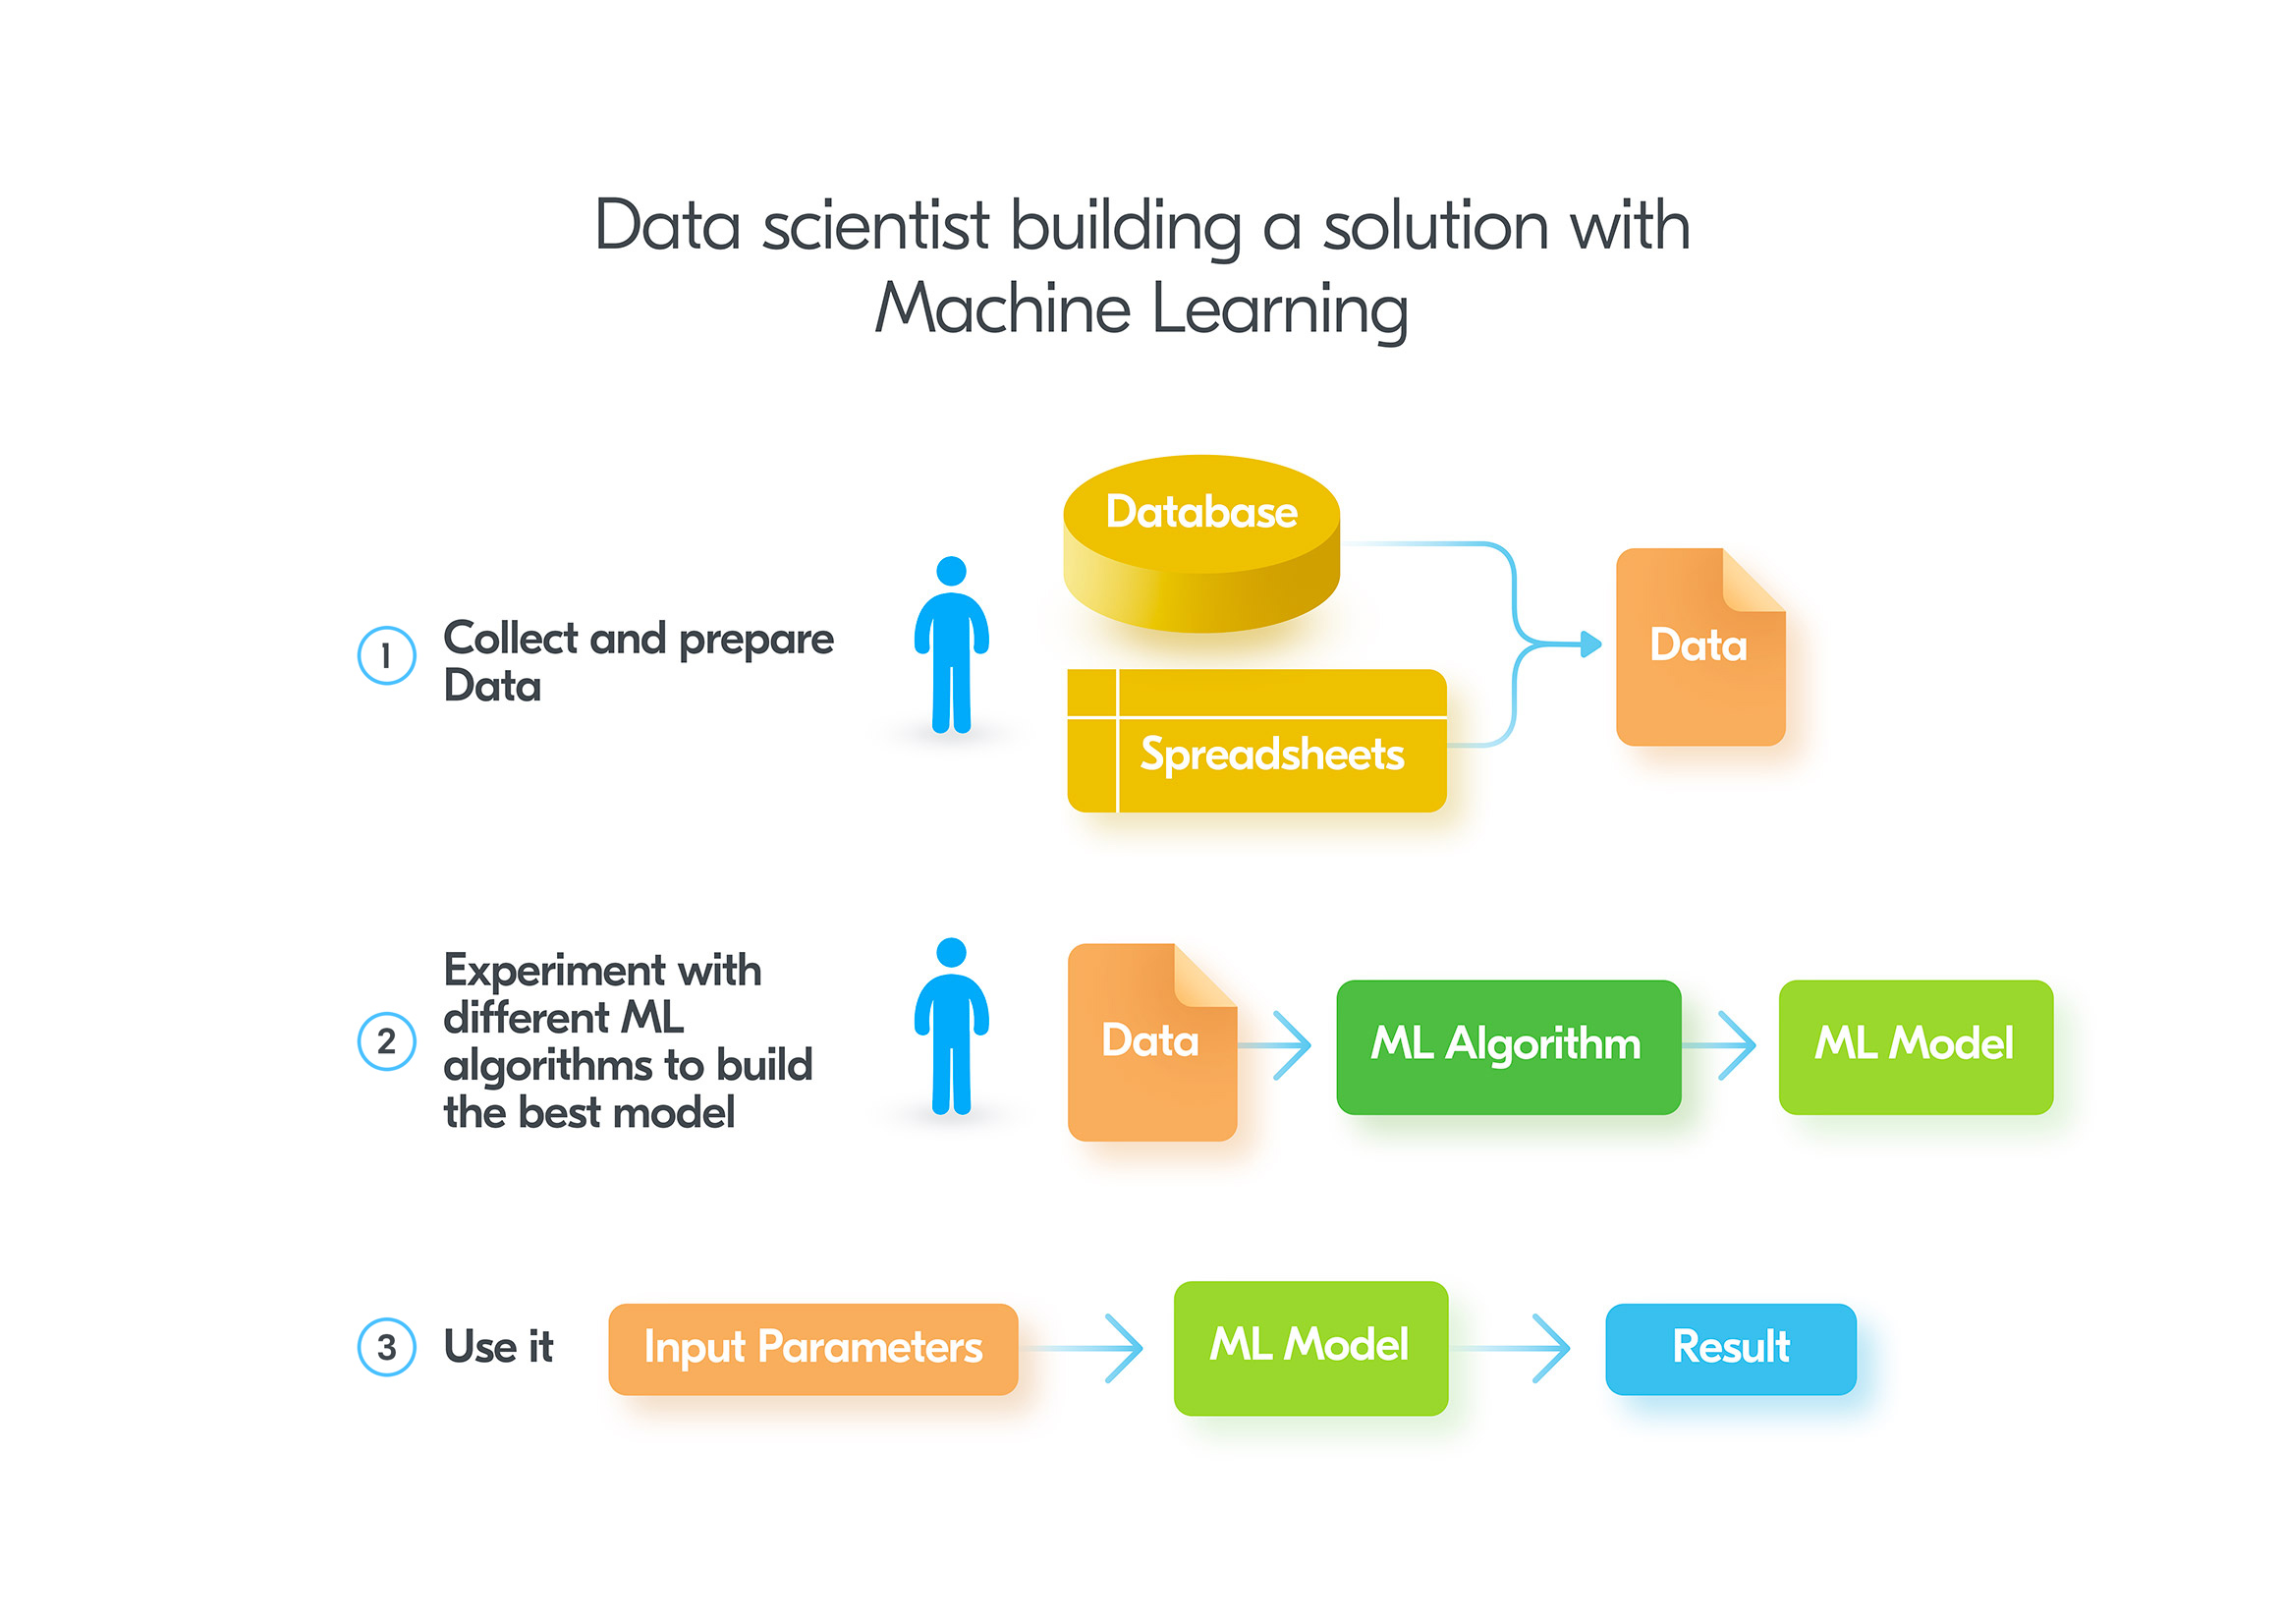 Building solution with machine learning